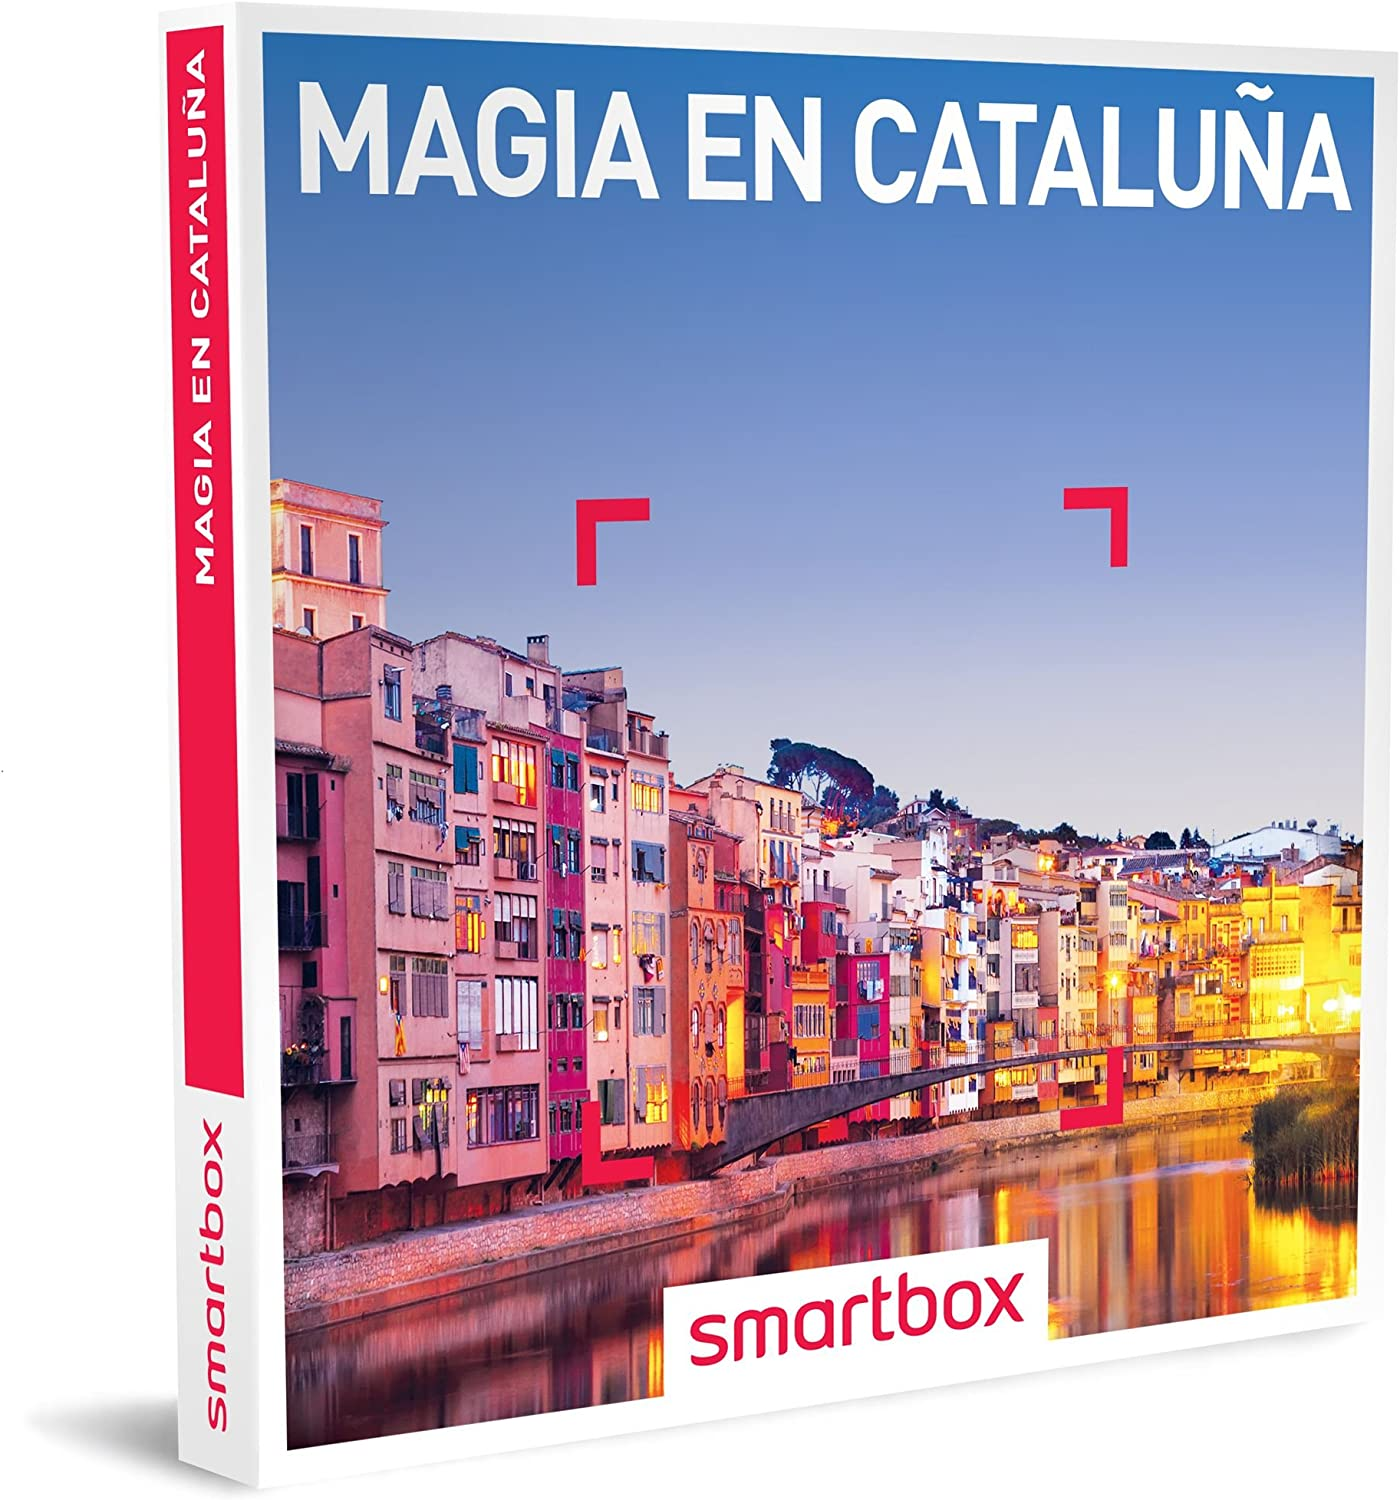 Smartbox - Caja Regalo para Adolescentes - Ideas Regalos ...